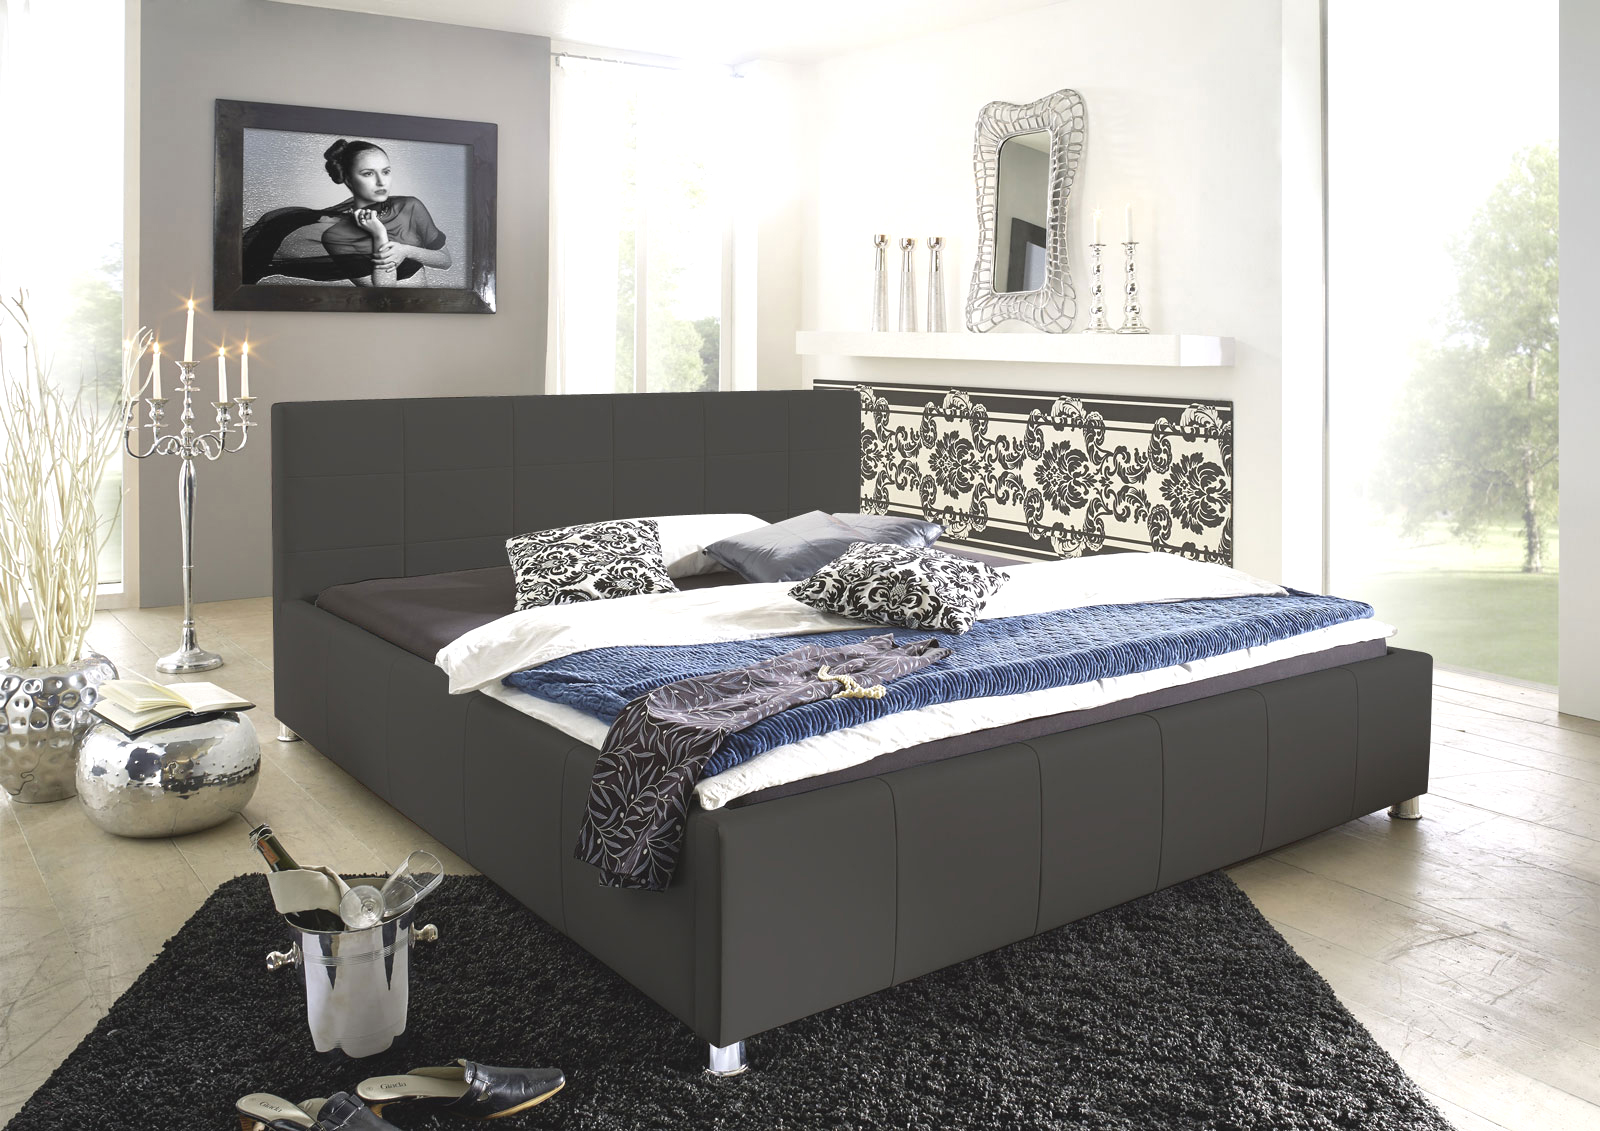 sam design bett 180 x 200 cm grau kira auf lager. Black Bedroom Furniture Sets. Home Design Ideas